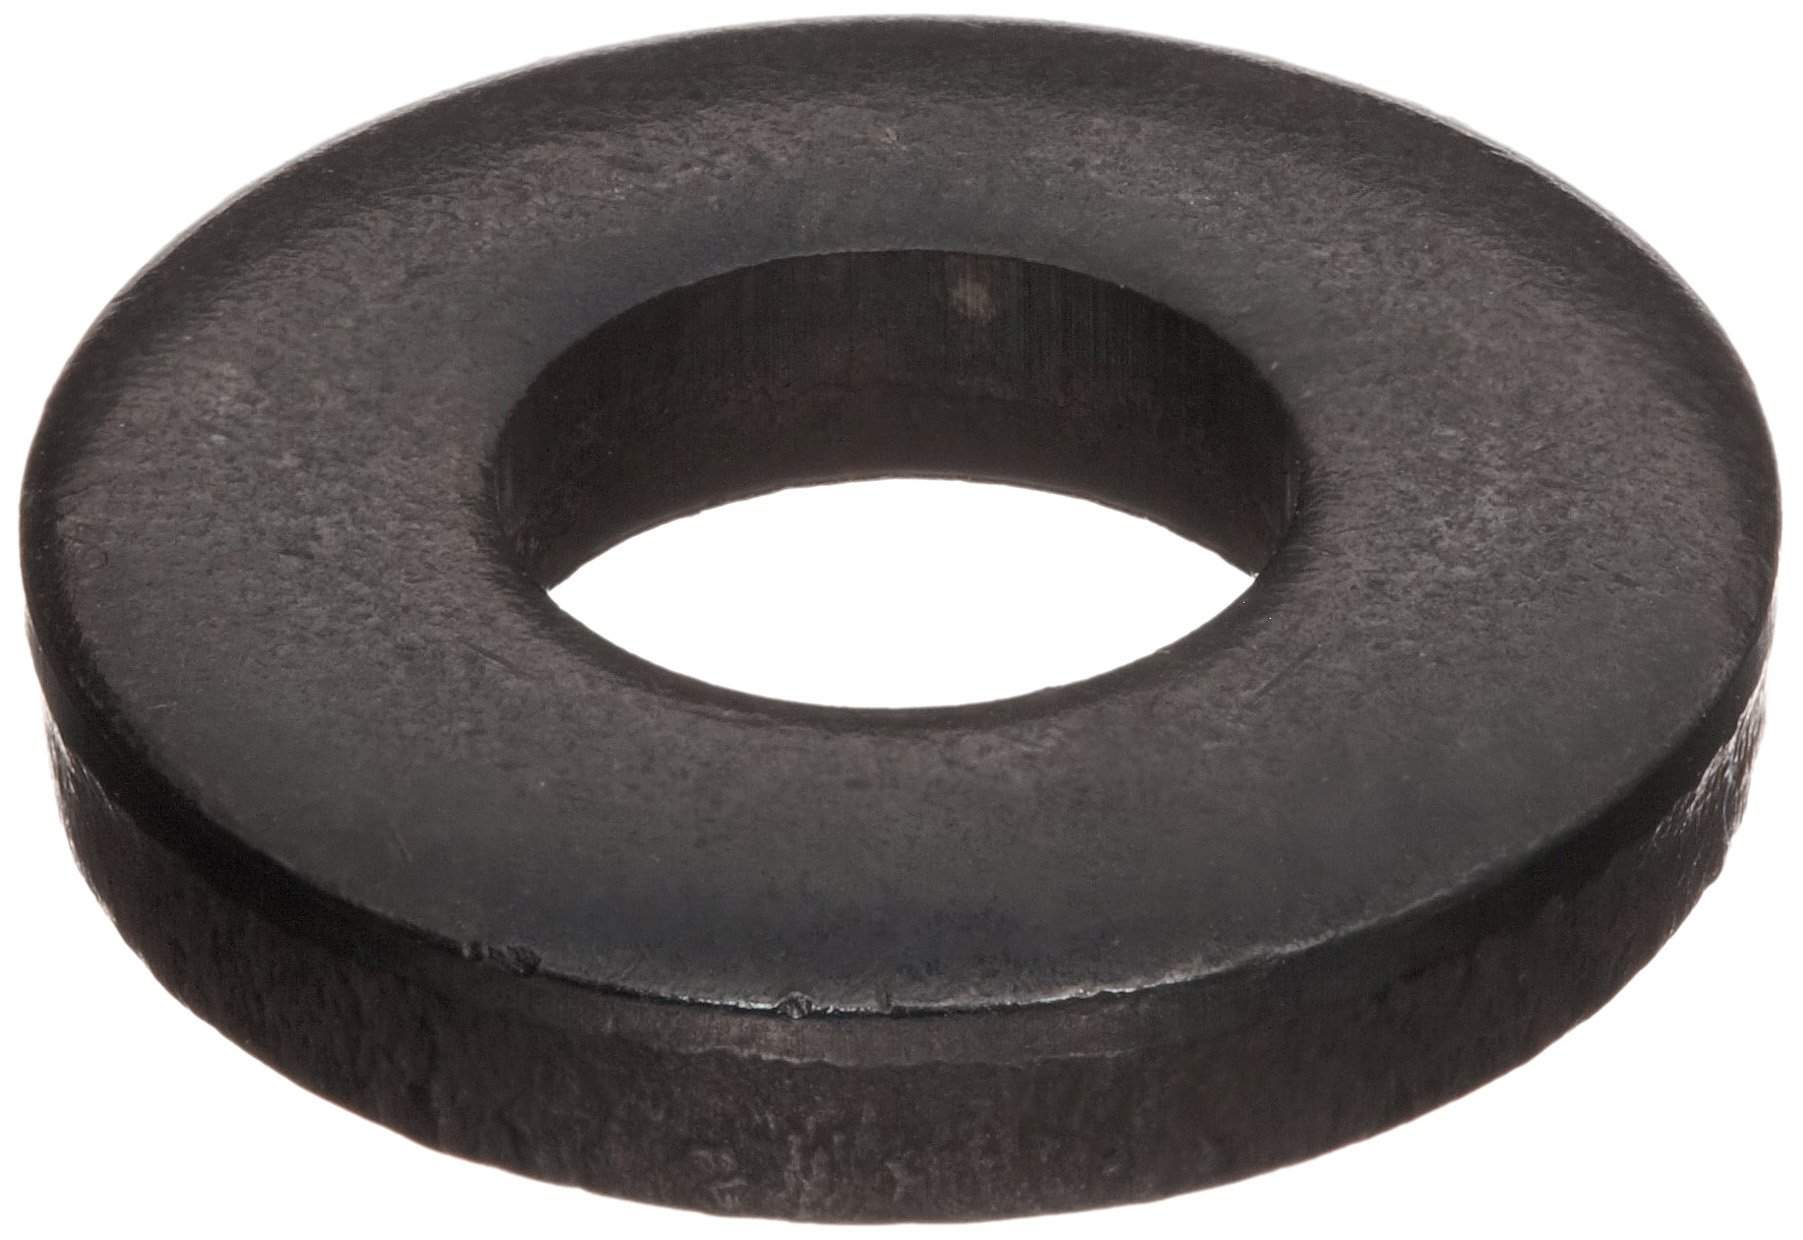 Steel Flat Washer, 5/16'' Hole Size, 0.281'' ID, 0.625'' OD, 0.125'' Nominal Thickness, Made in US (Pack of 50)